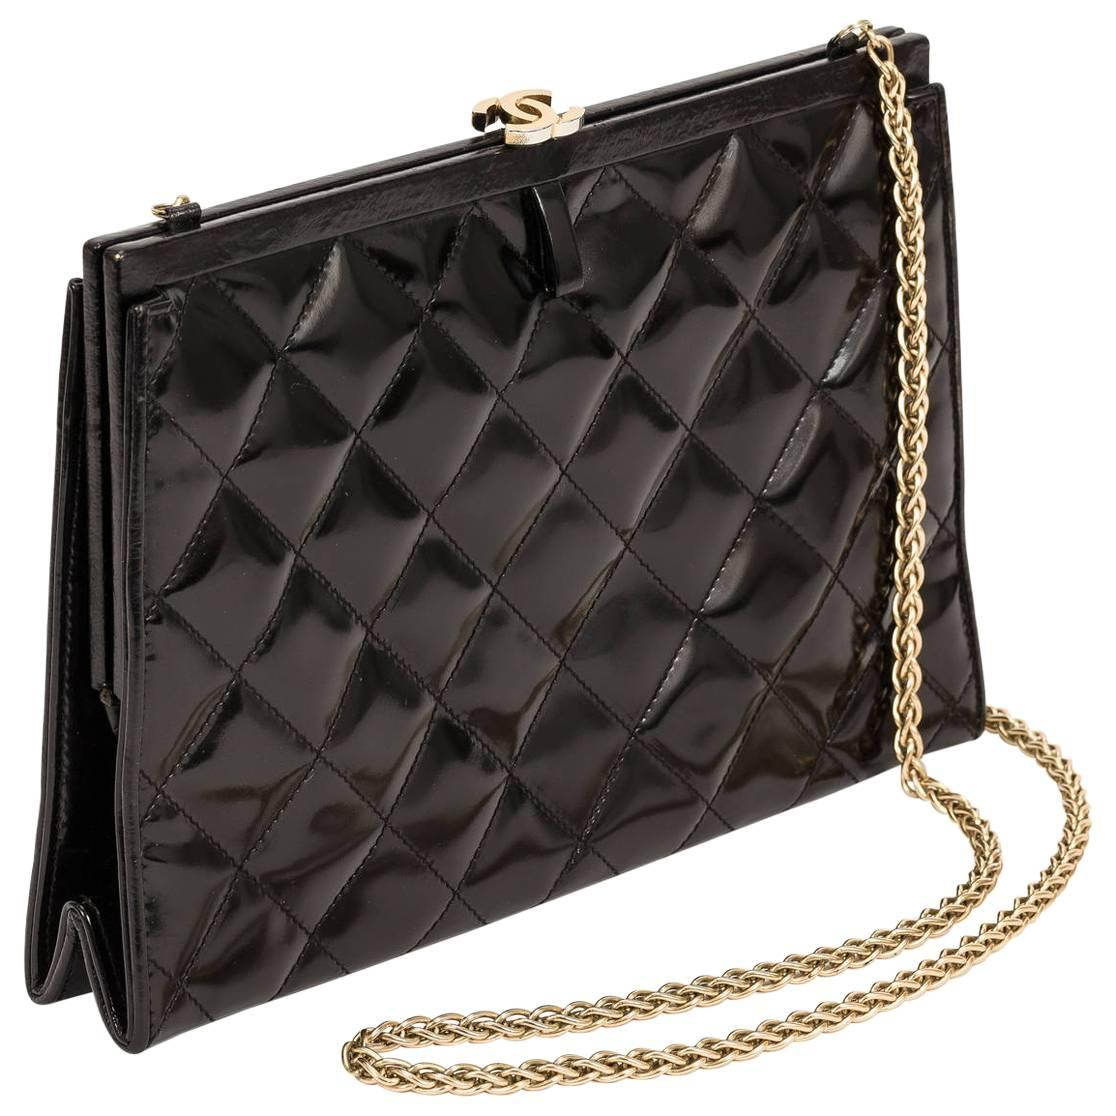 ccf0806dc670 Chanel Canvas and Leather Trim